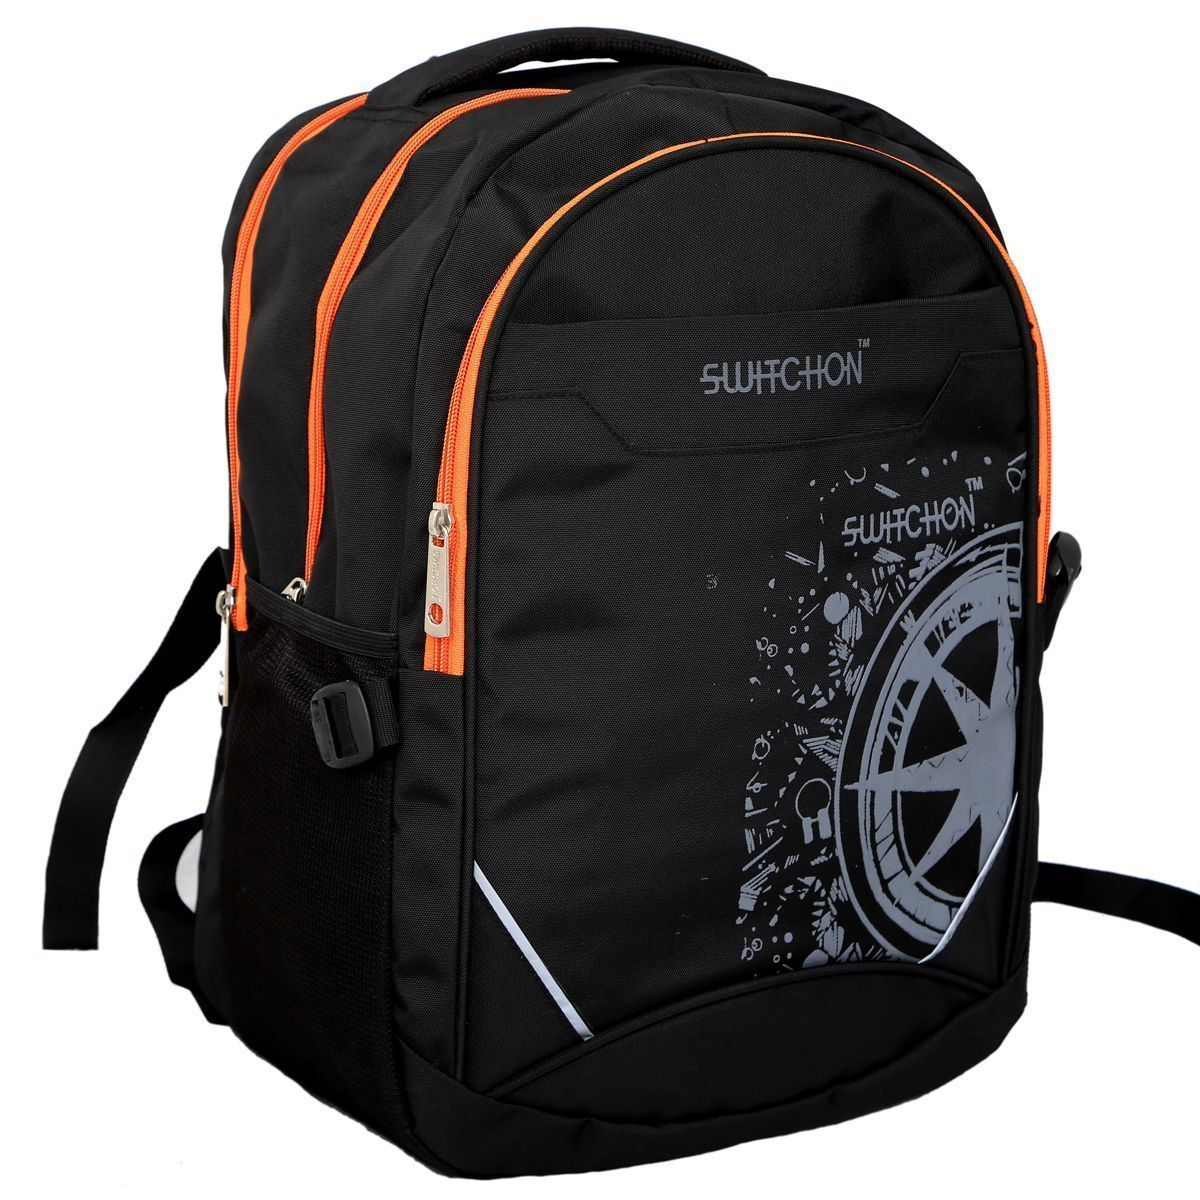 Kuber Industries Stylish 30 Ltrs College Bag, Casual Daybag Backpack (Black) - KI9026